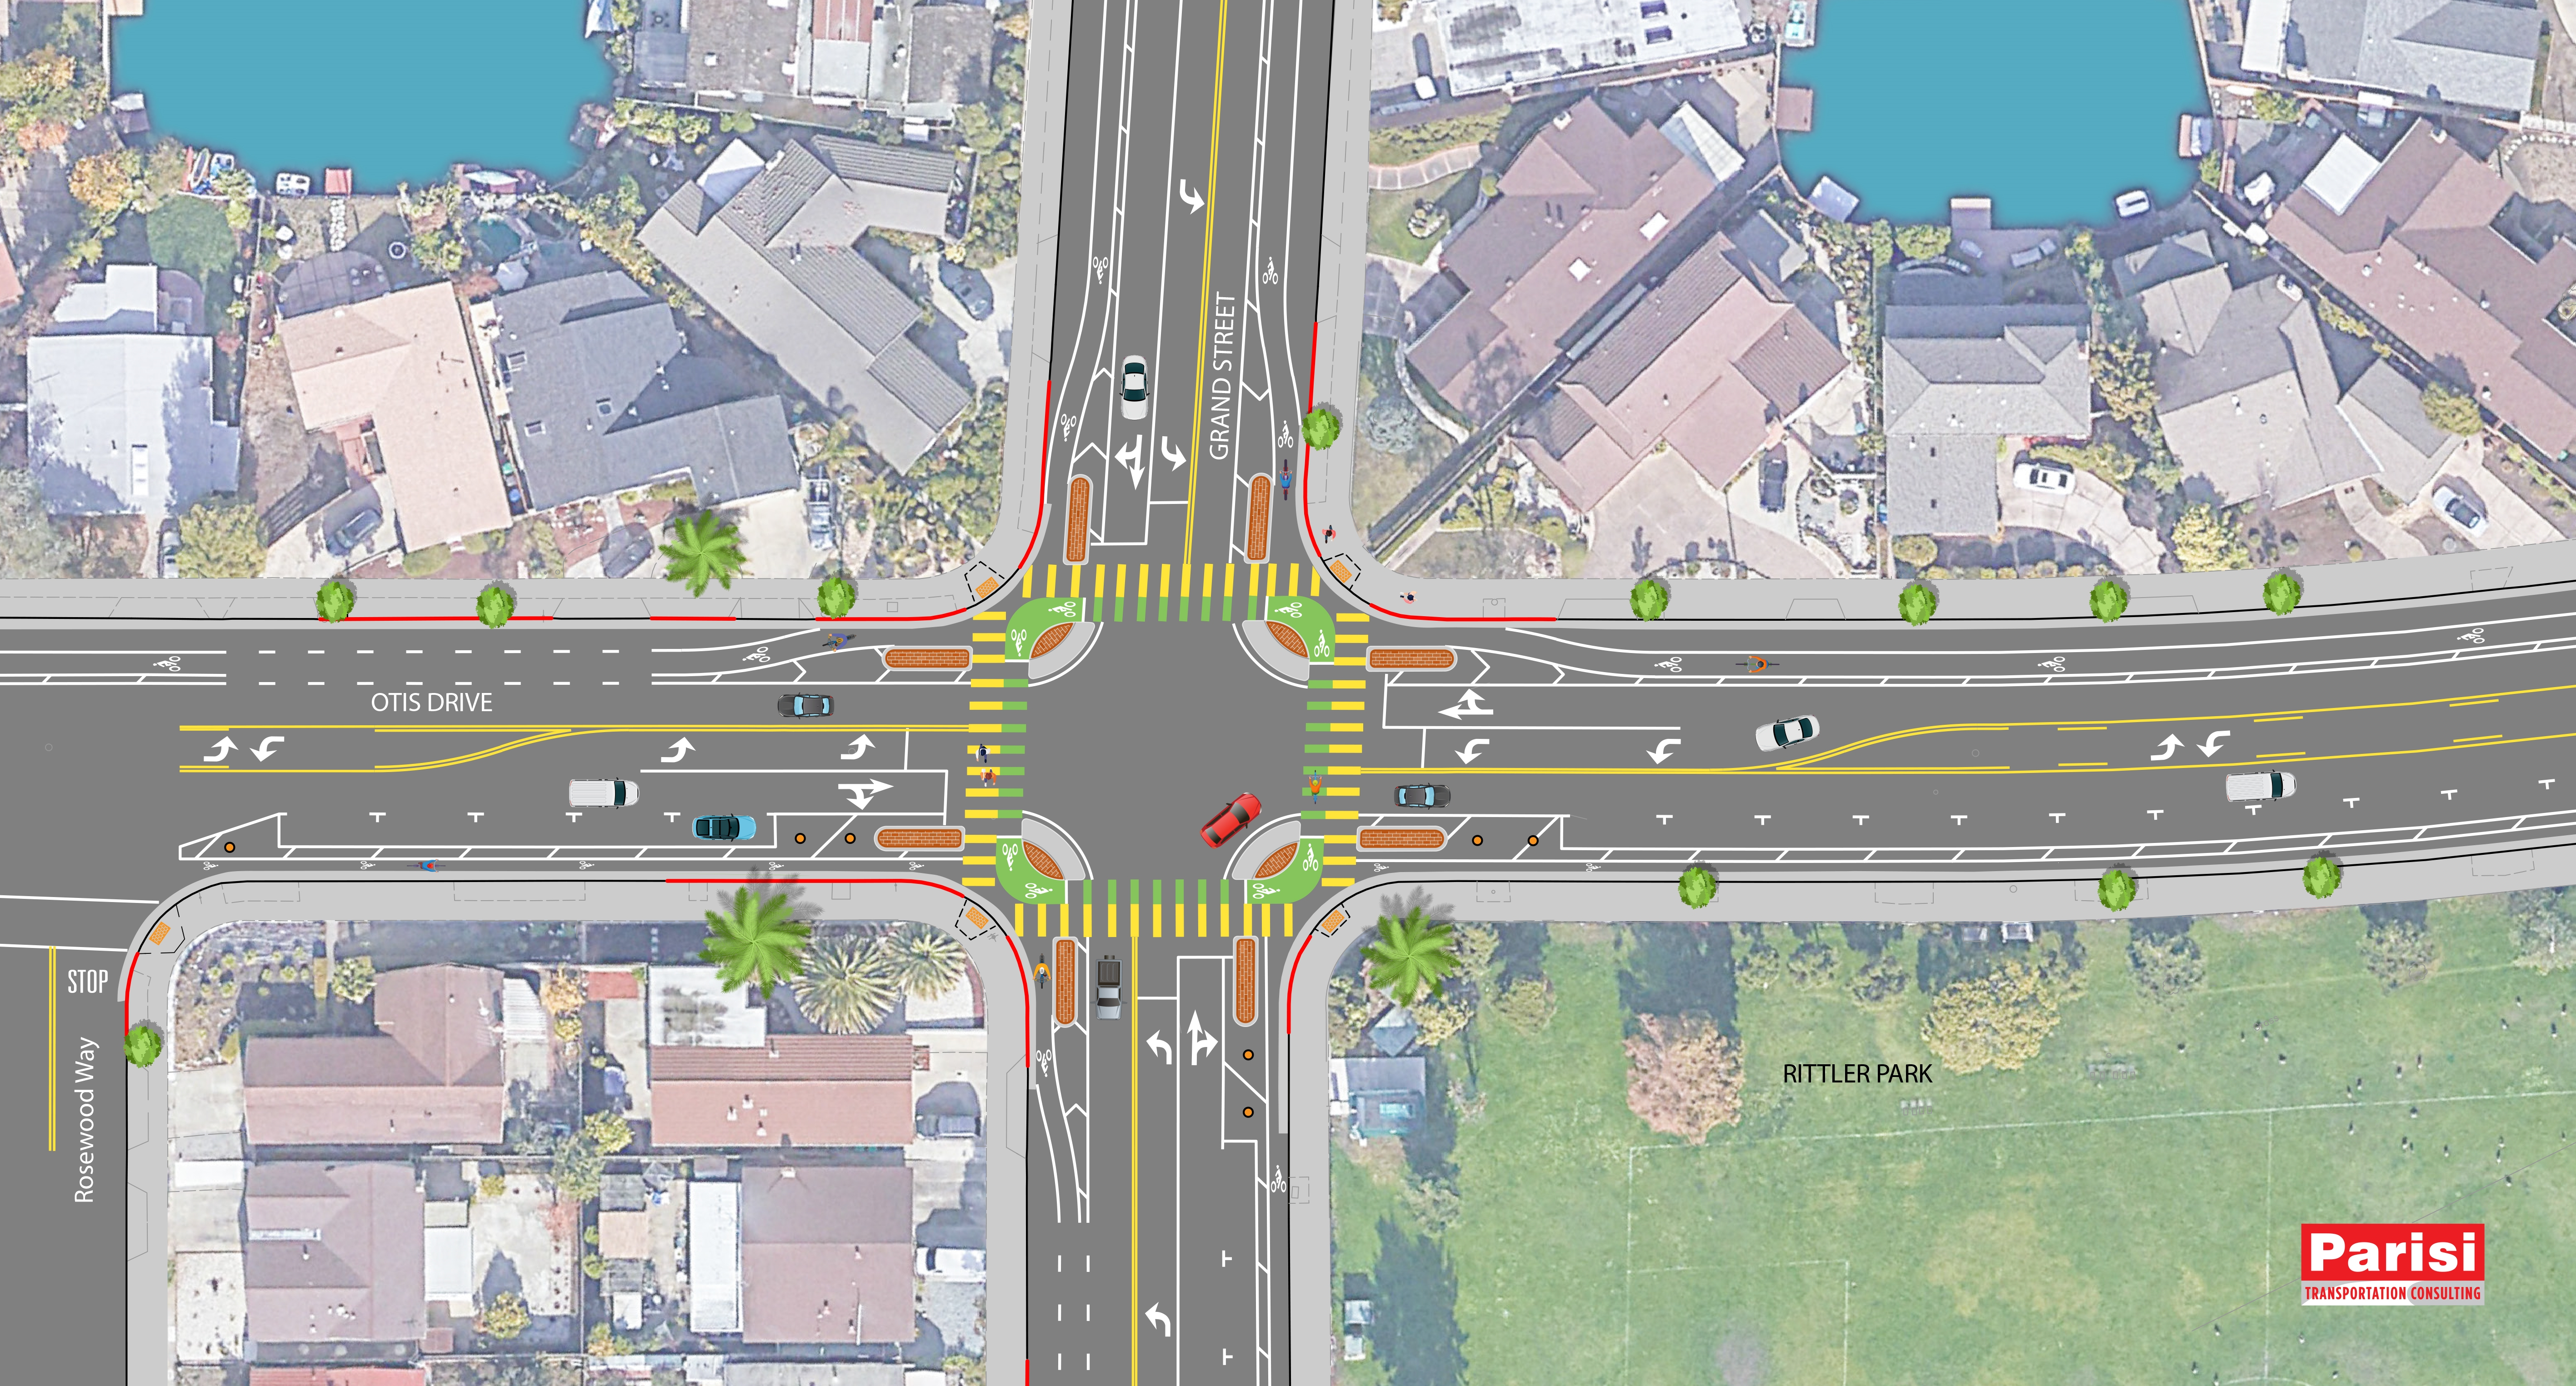 Otis-Grand-Intersection-20210113.jpg